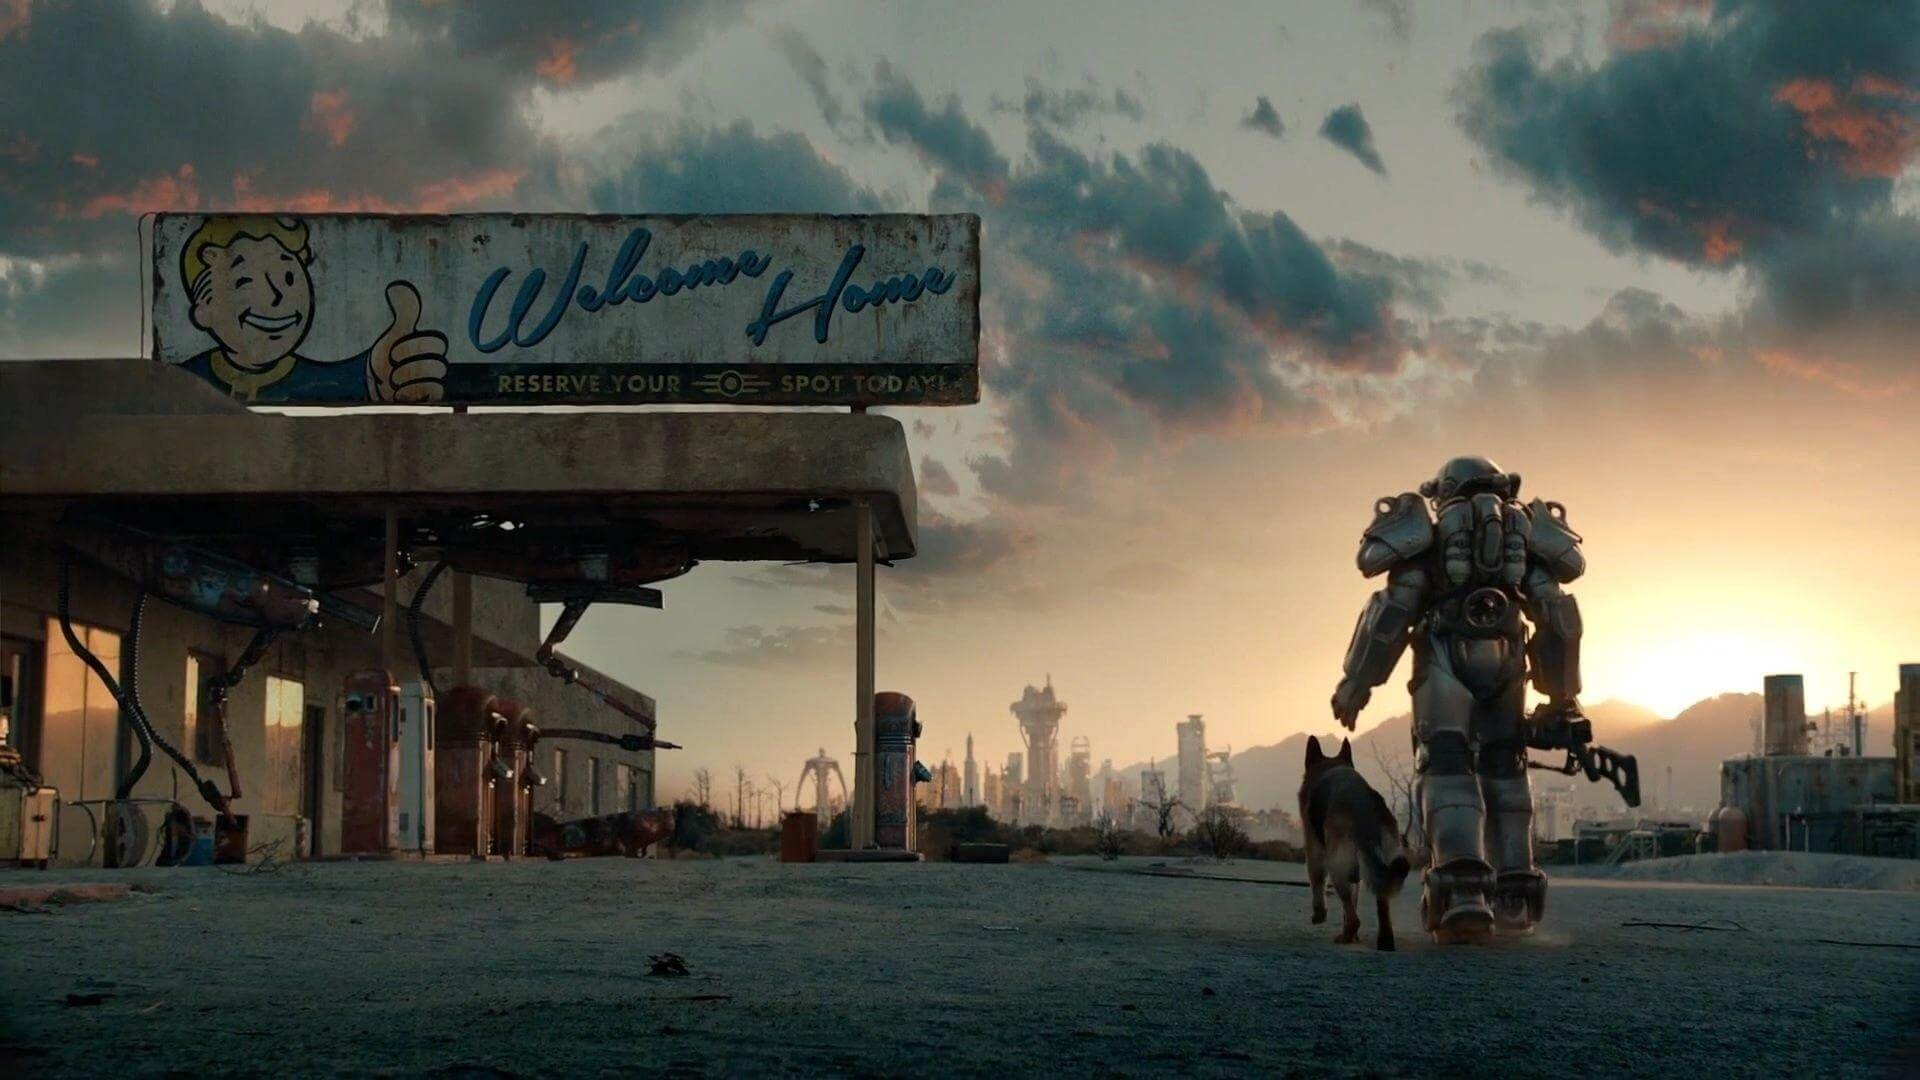 Fallout 76 Eyebot Locations - Where to Find Them